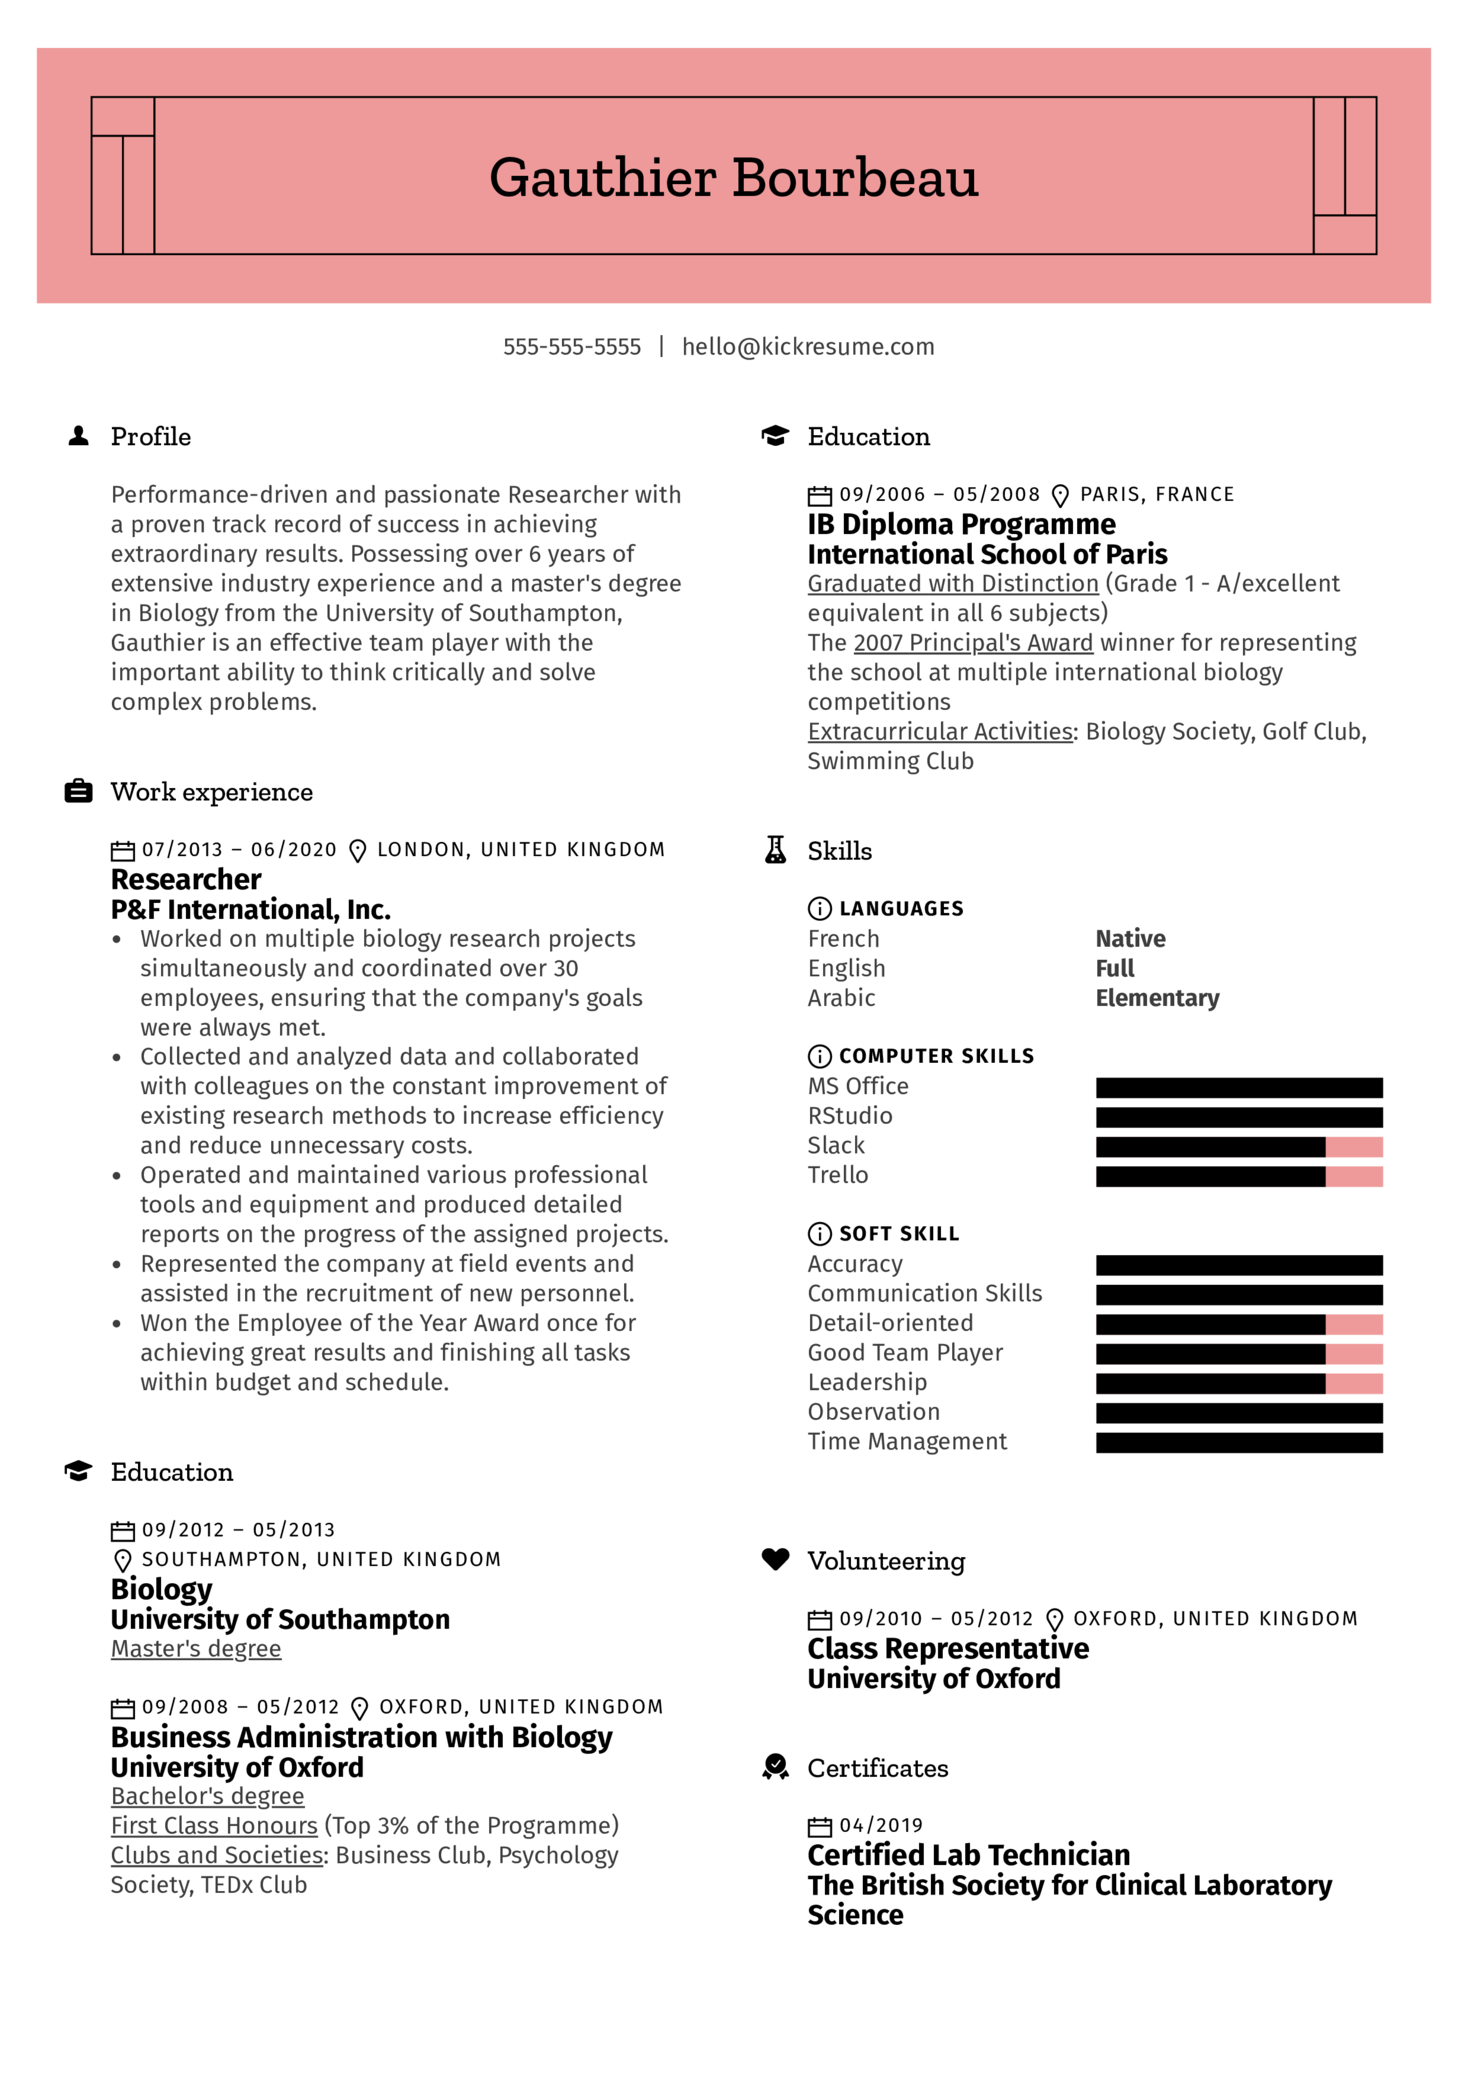 Researcher Resume Template (Part 1)